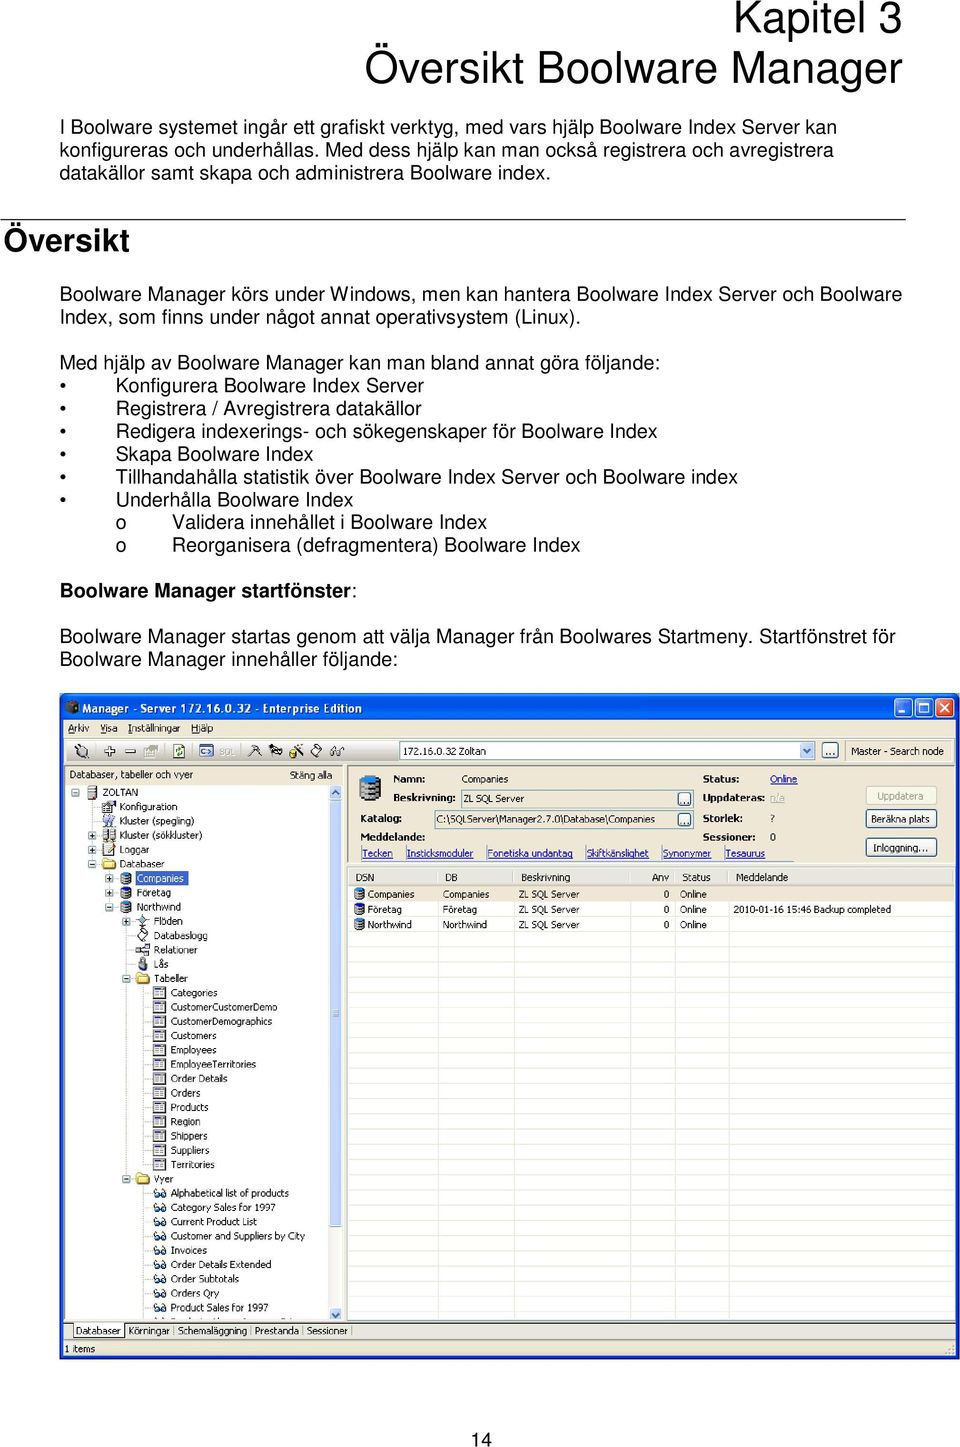 Översikt Boolware Manager körs under Windows, men kan hantera Boolware Index Server och Boolware Index, som finns under något annat operativsystem (Linux).